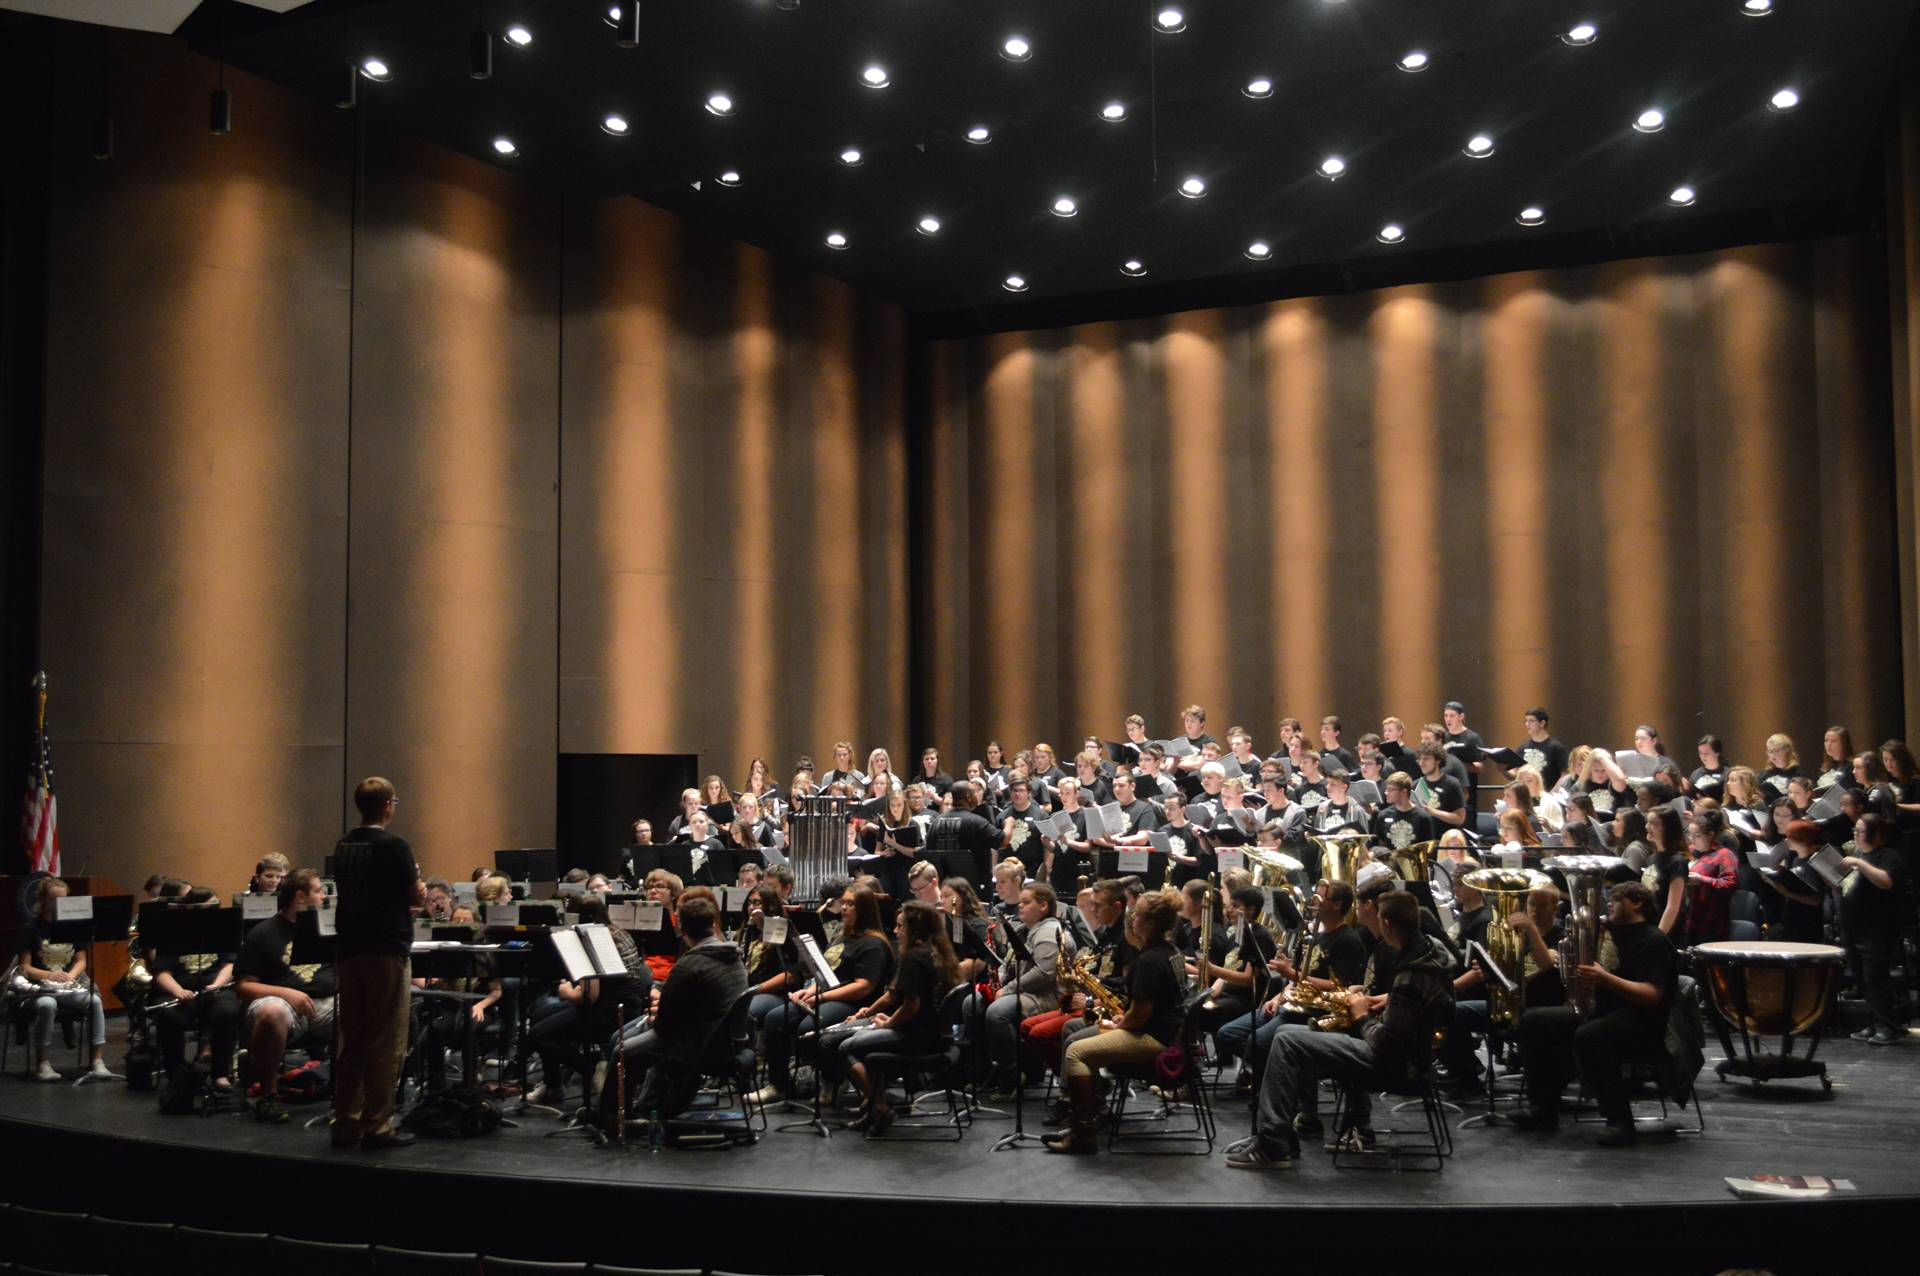 Combined Choir and Band Rehearsal at SSU